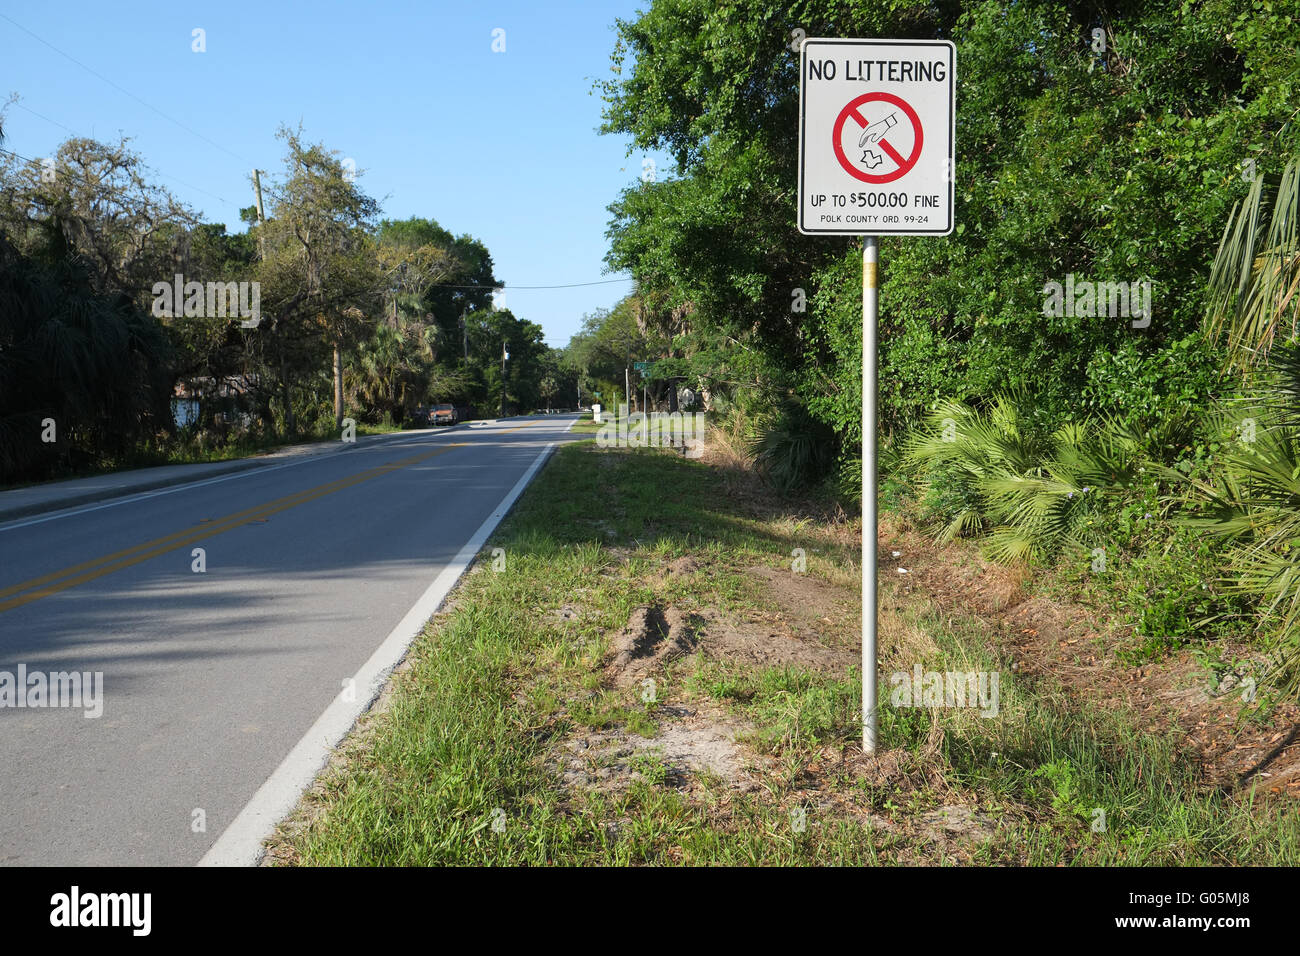 No littering sign beside the highway in Central Florida, Near Davenport. April 2016. - Stock Image